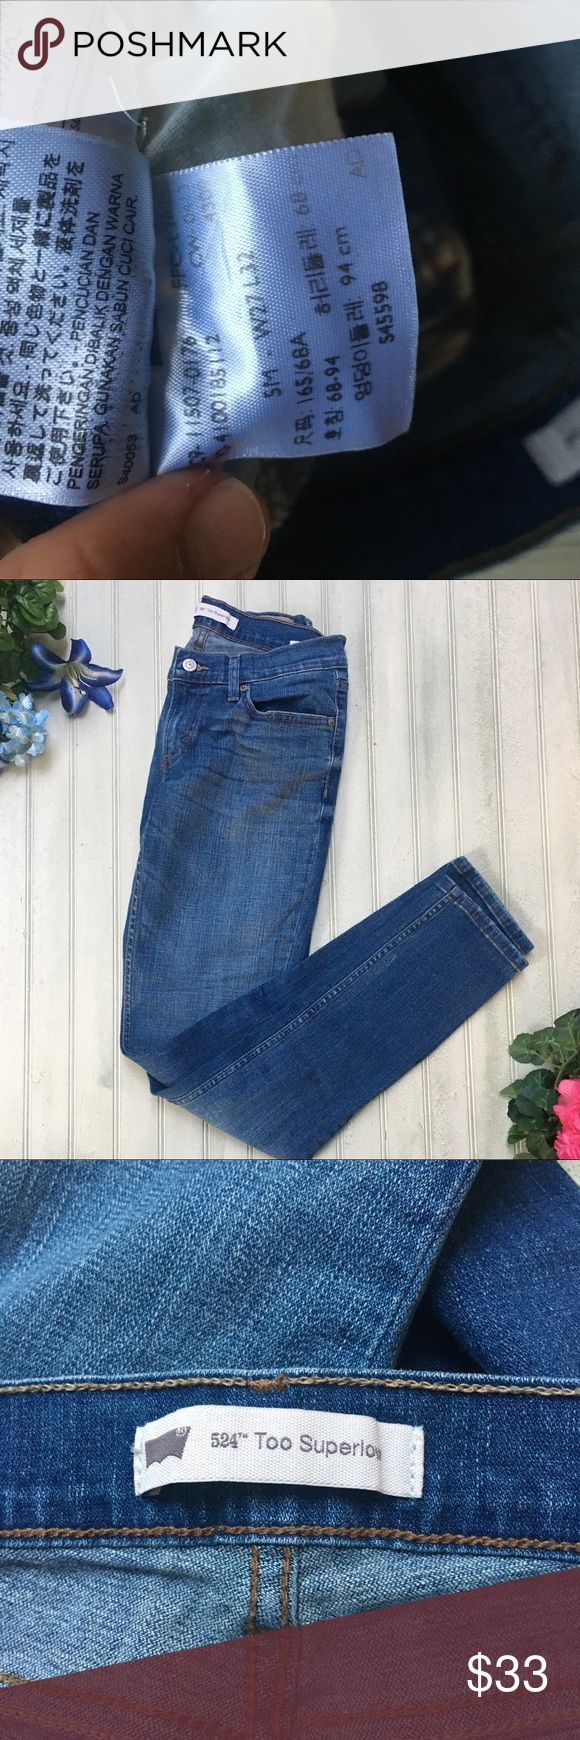 Levi's Skinny Jeans - Too Super Low Levi's Skinny Jeans Low Rise •Waist: 27in Length: 32in  •Excellent Used Condition, Few to no signs of wear!  📦 Same to Next Day Shipping 💲Don't like the price? Make me an offer! Most reasonable offers are accepted! ❓Have questions?  Ask! I'd love to help in any way I can! Levi's Jeans Skinny